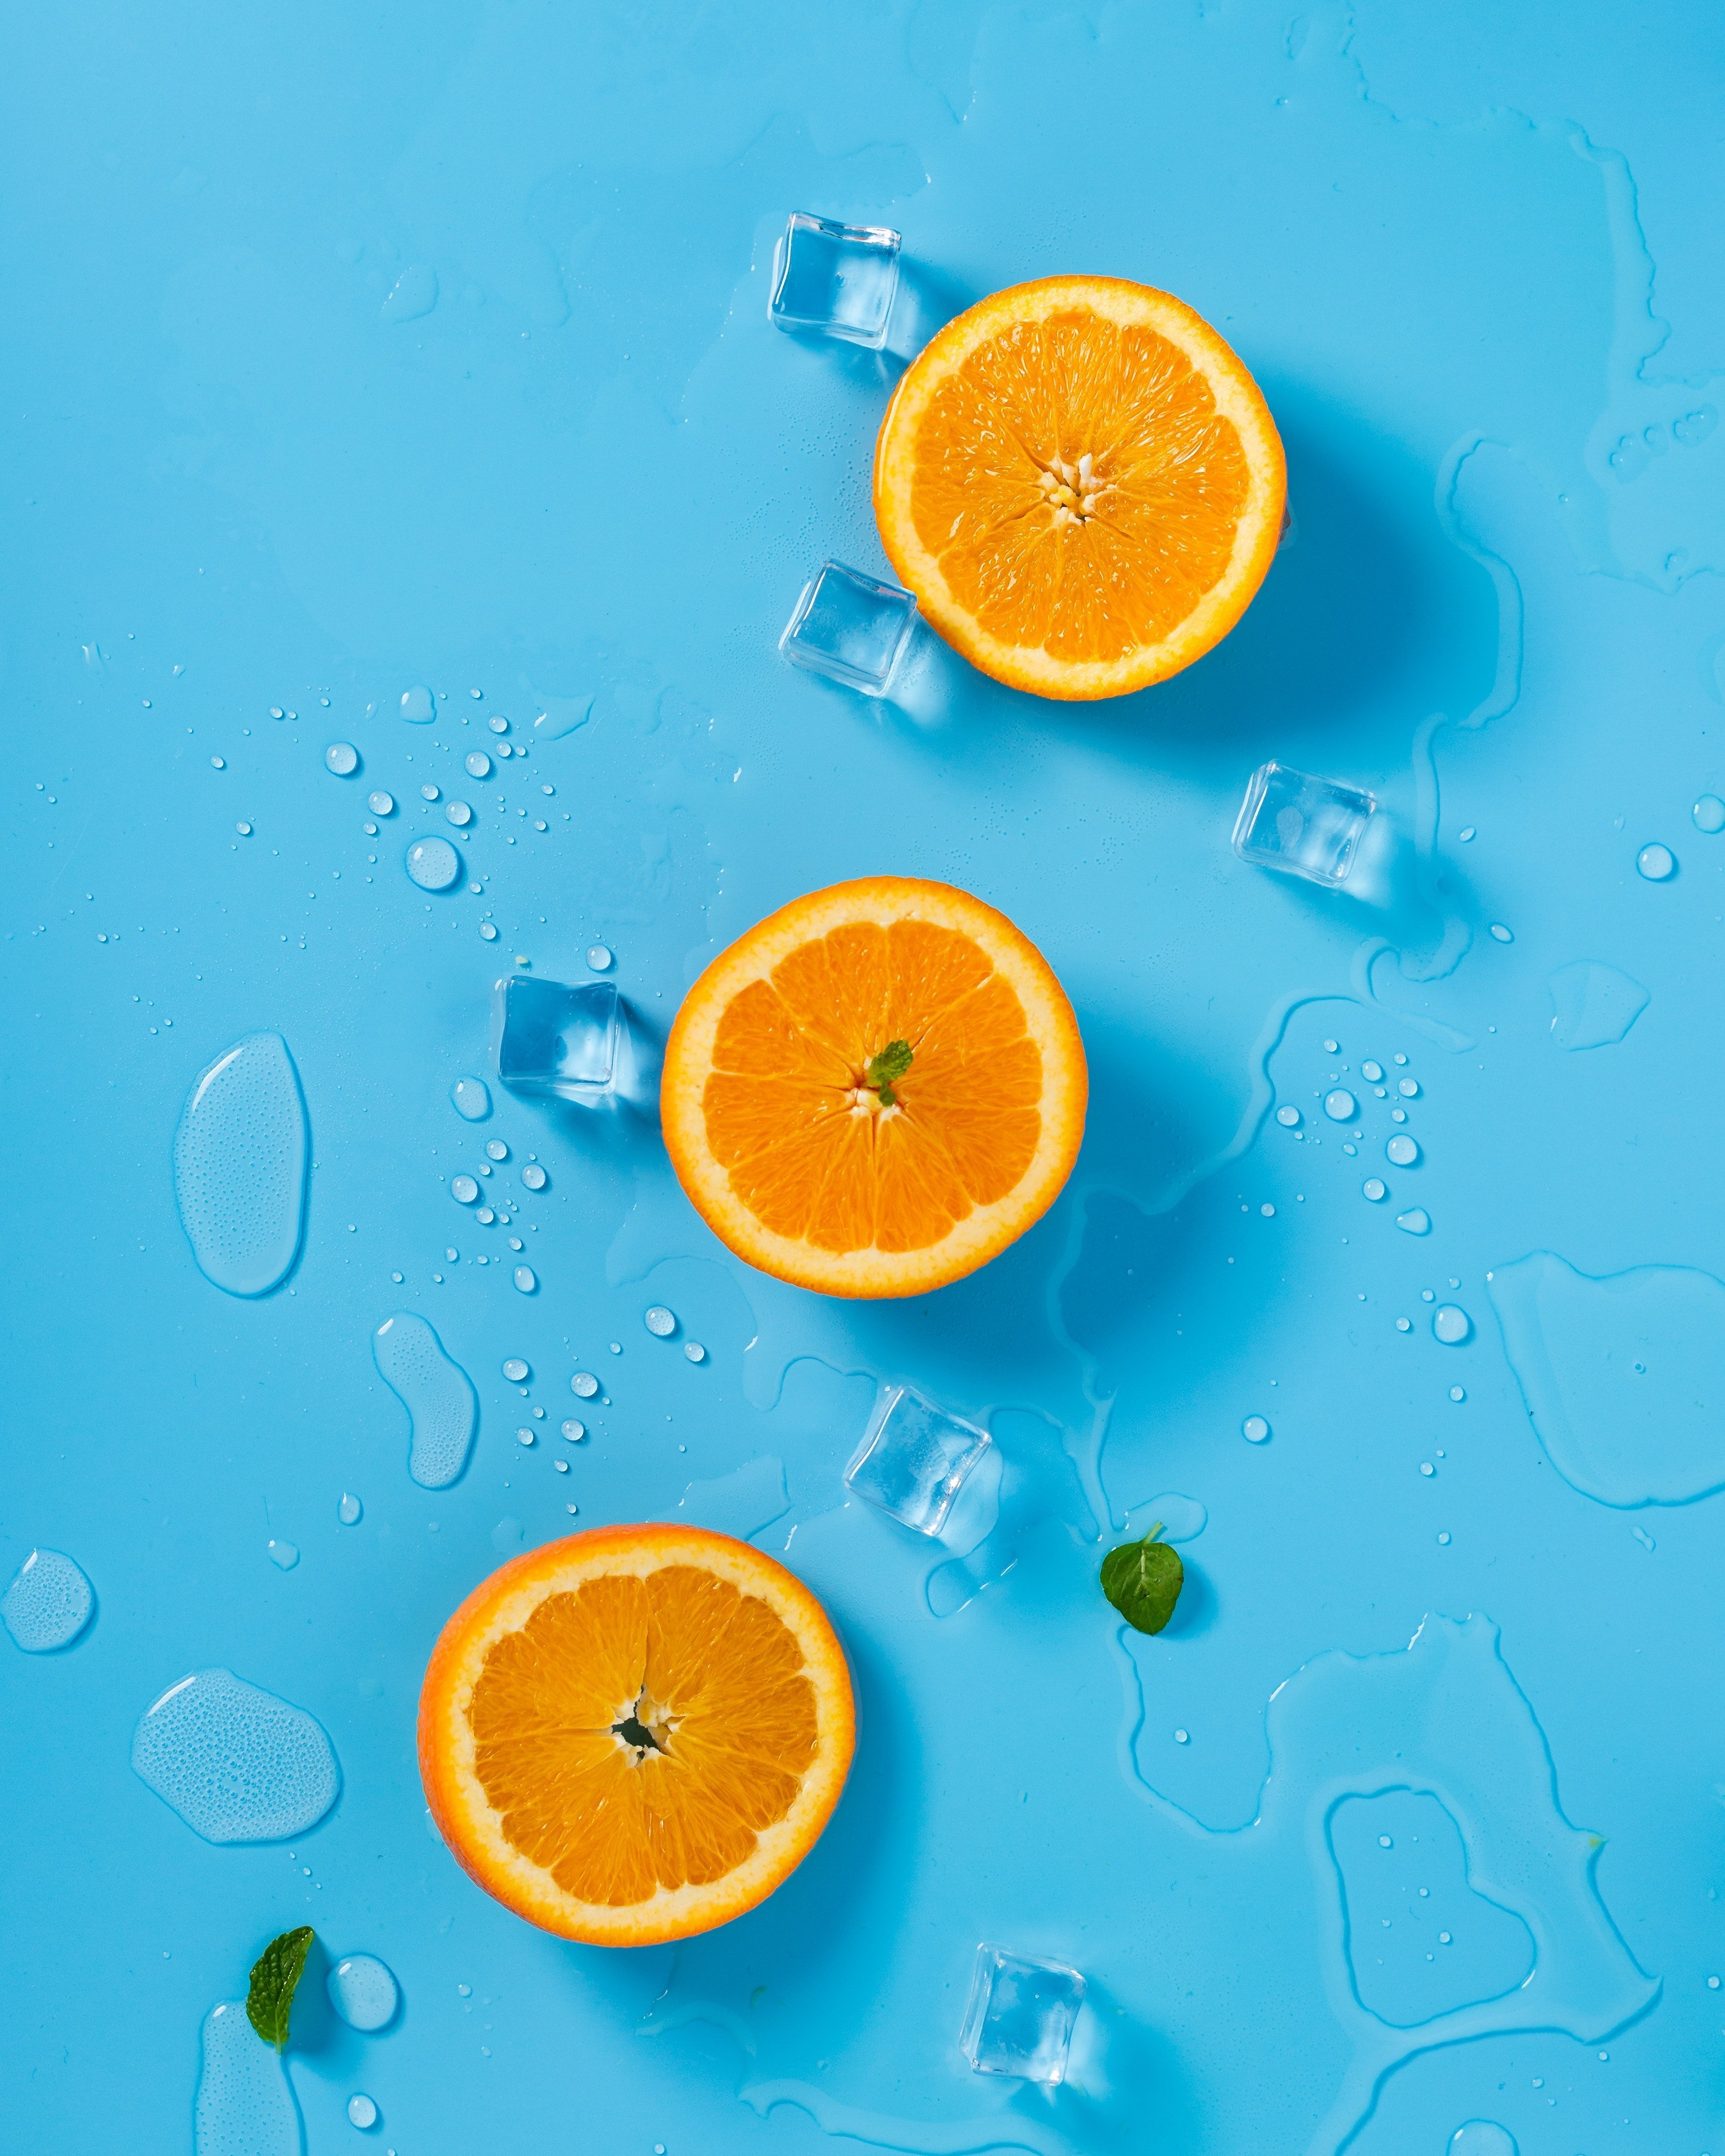 Oranges with ice